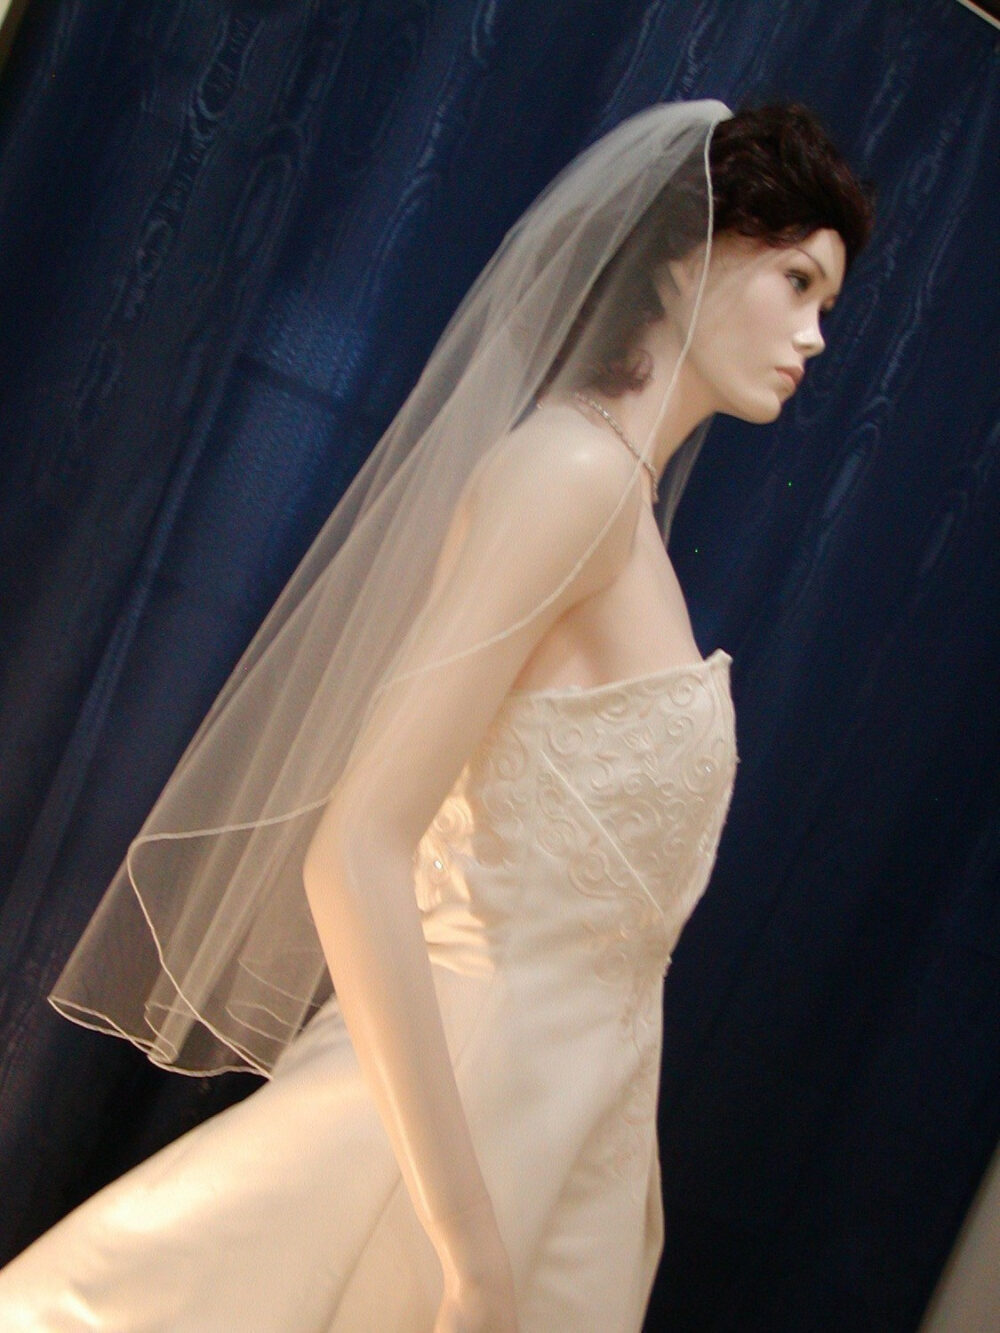 Wedding Veil Bridal Fingertip Length Cascading Waterfall Style With Delicate Pencil Edge Sale